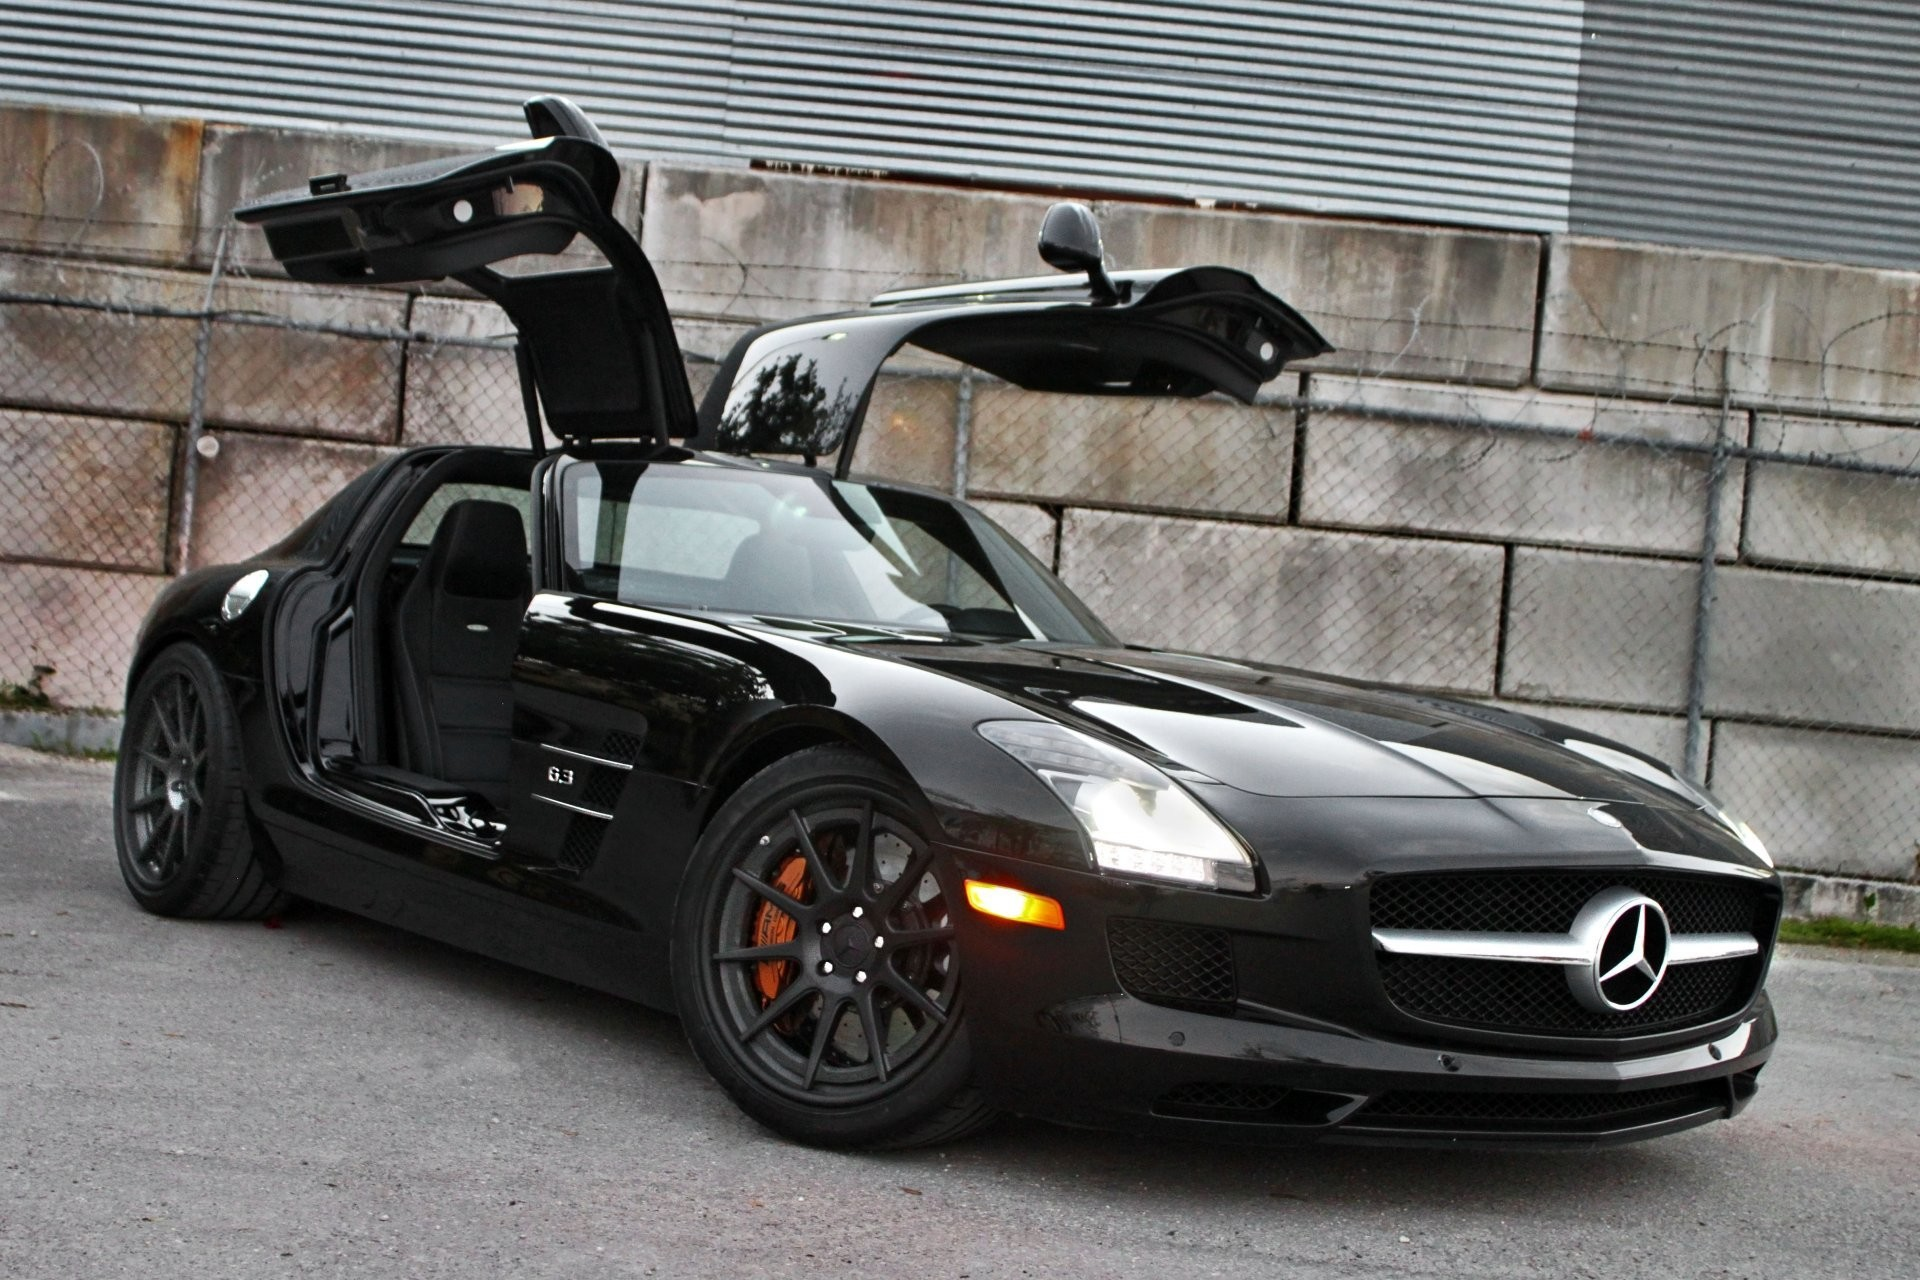 1920x1280 mercedes benz sls amg black mercedes-benz view of the door gull wing fenced  kolyusaya